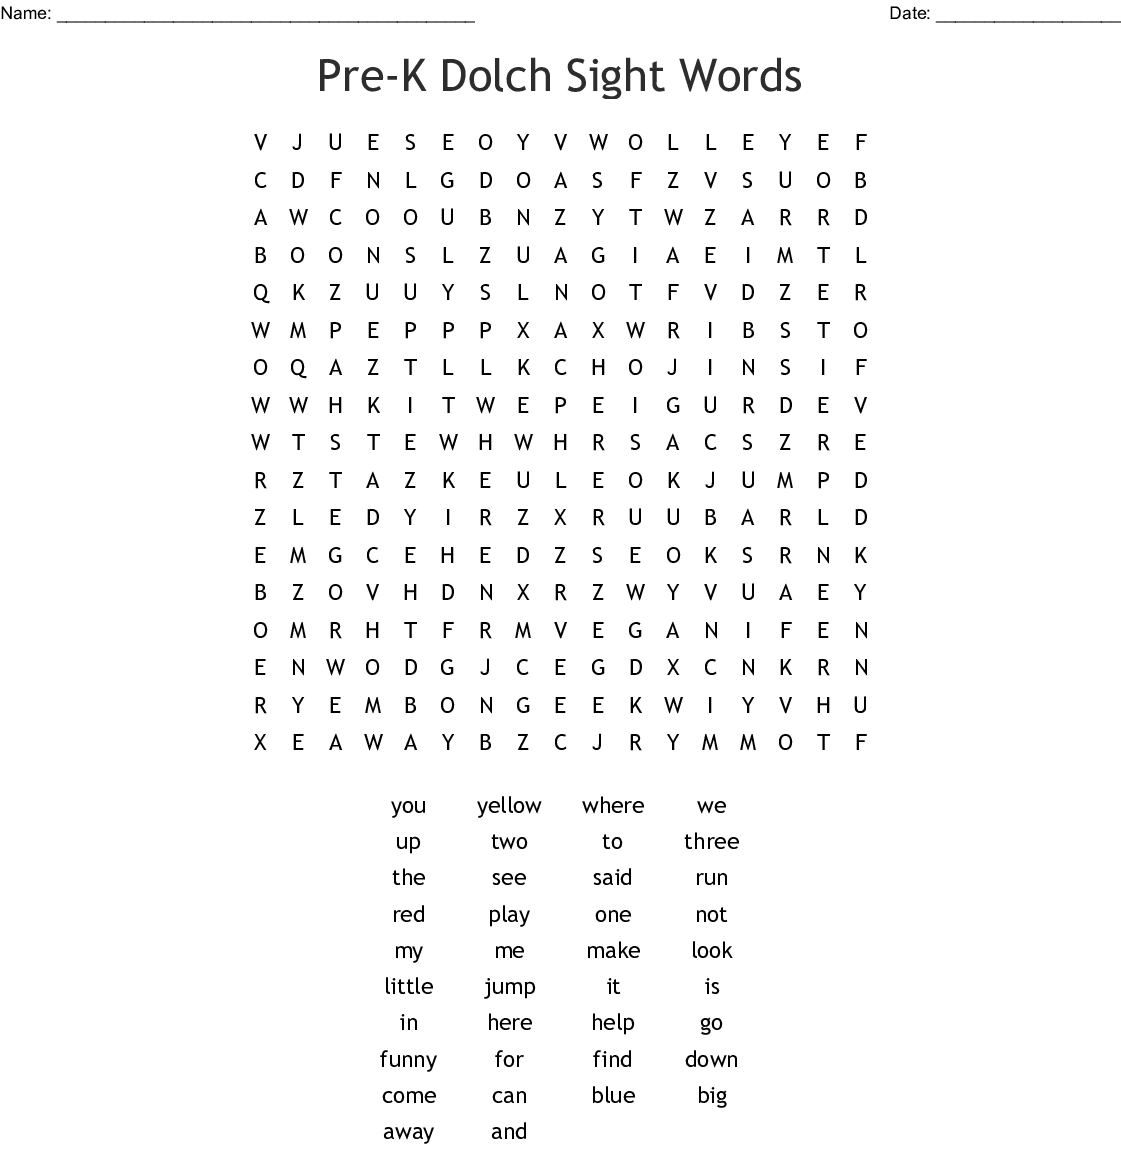 Spelling Packet 1 Word Search